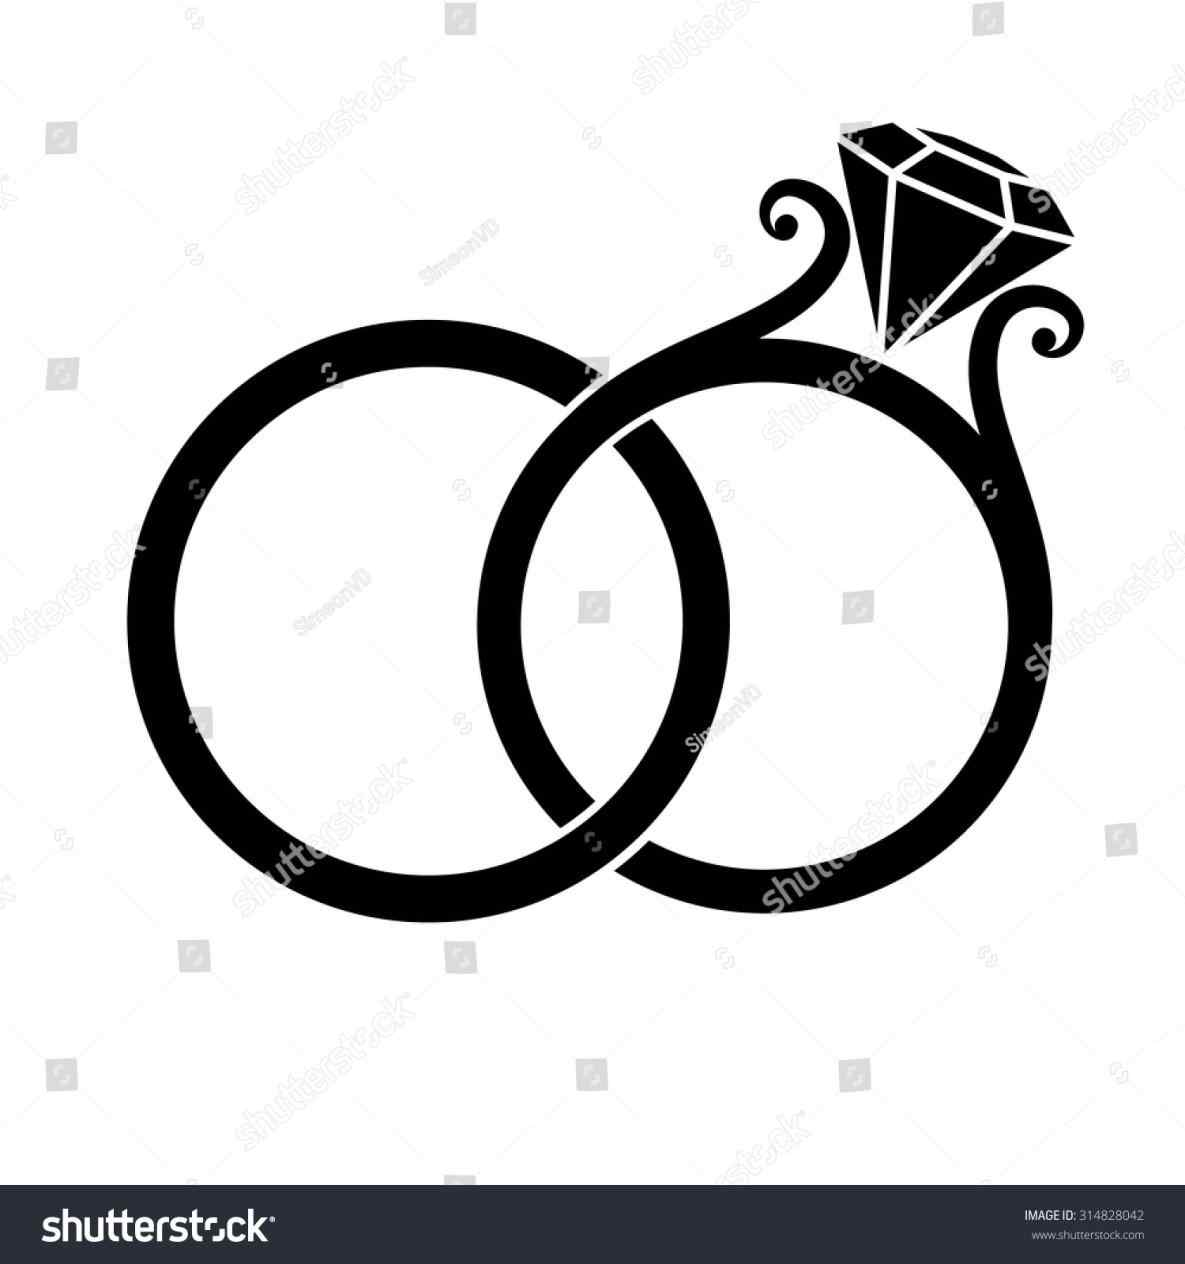 Engagement Ring Silhouette